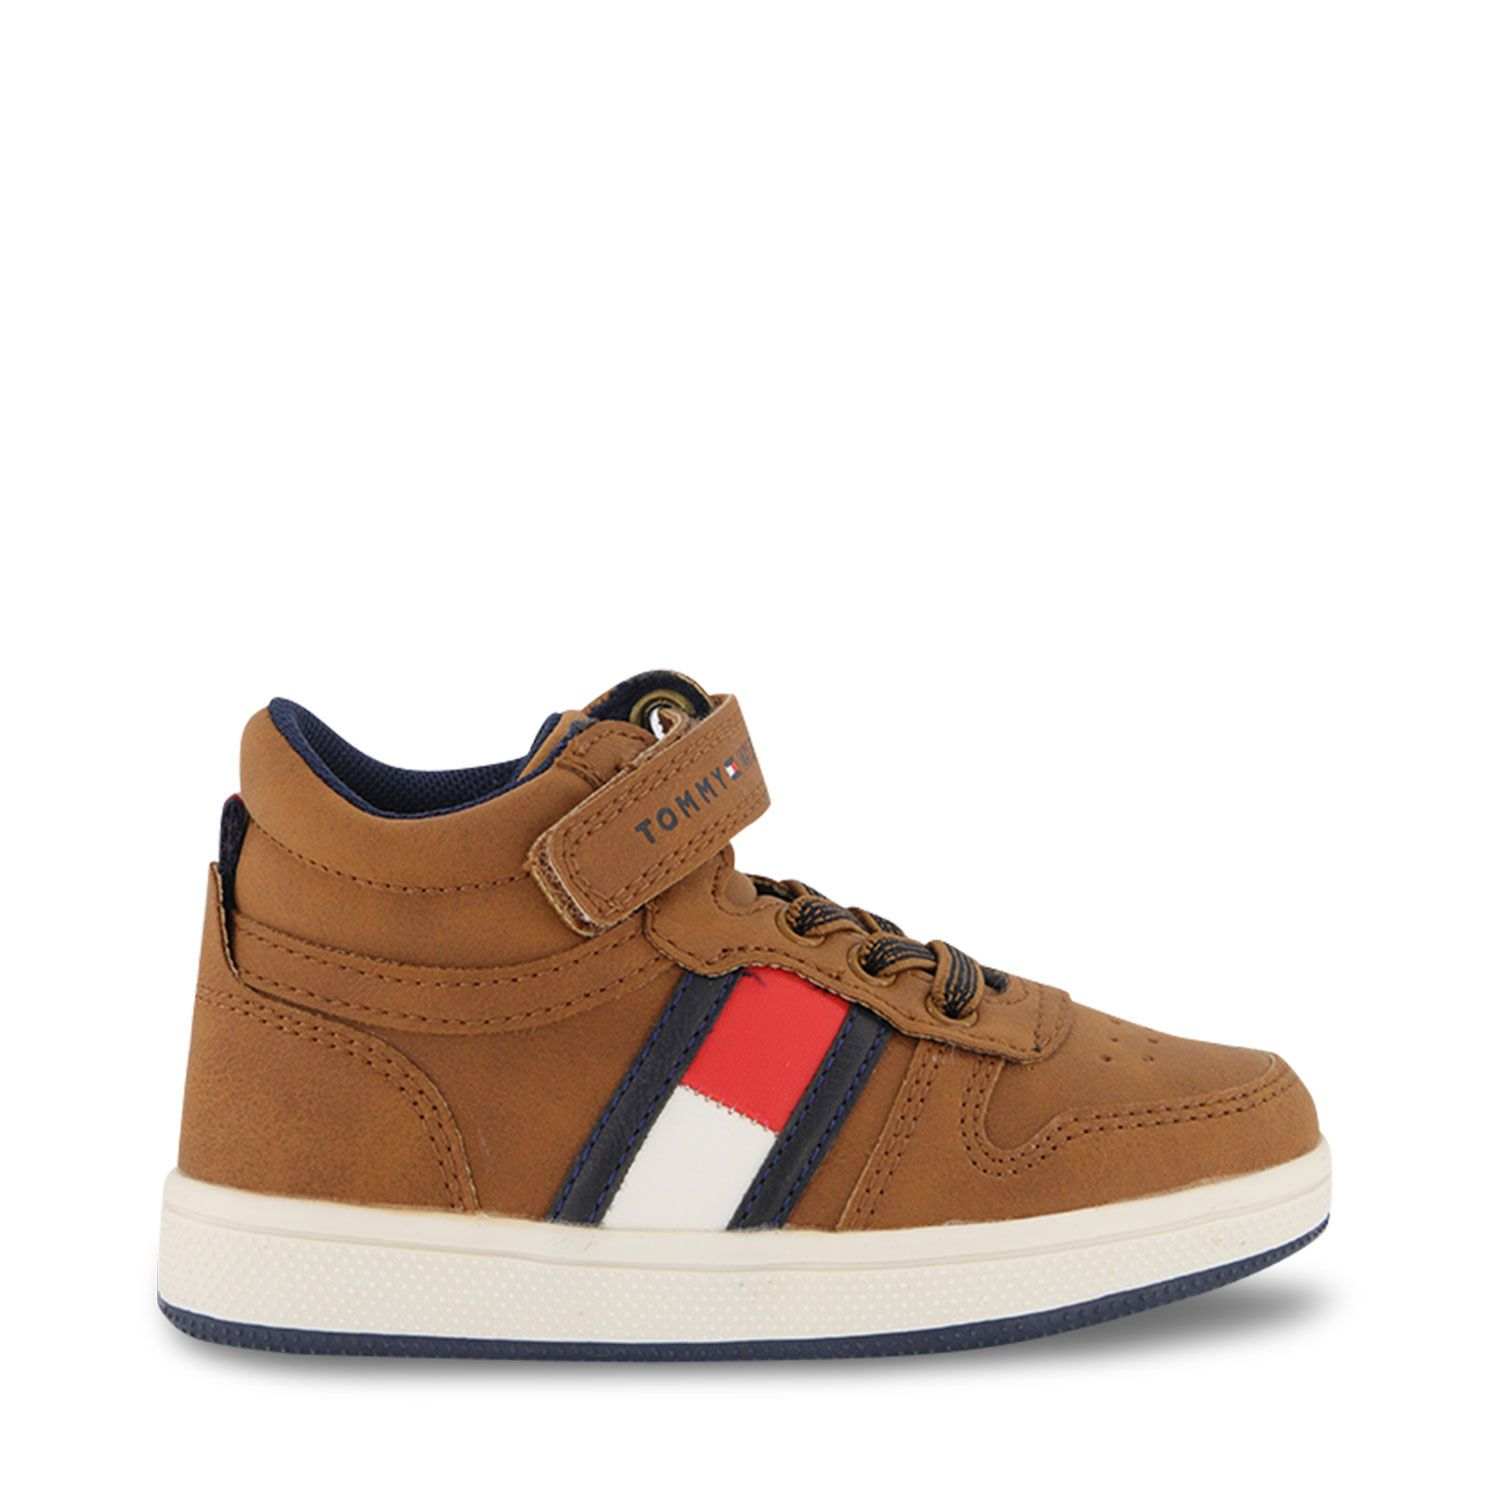 Picture of Tommy Hilfiger 32049 kids sneakers camel